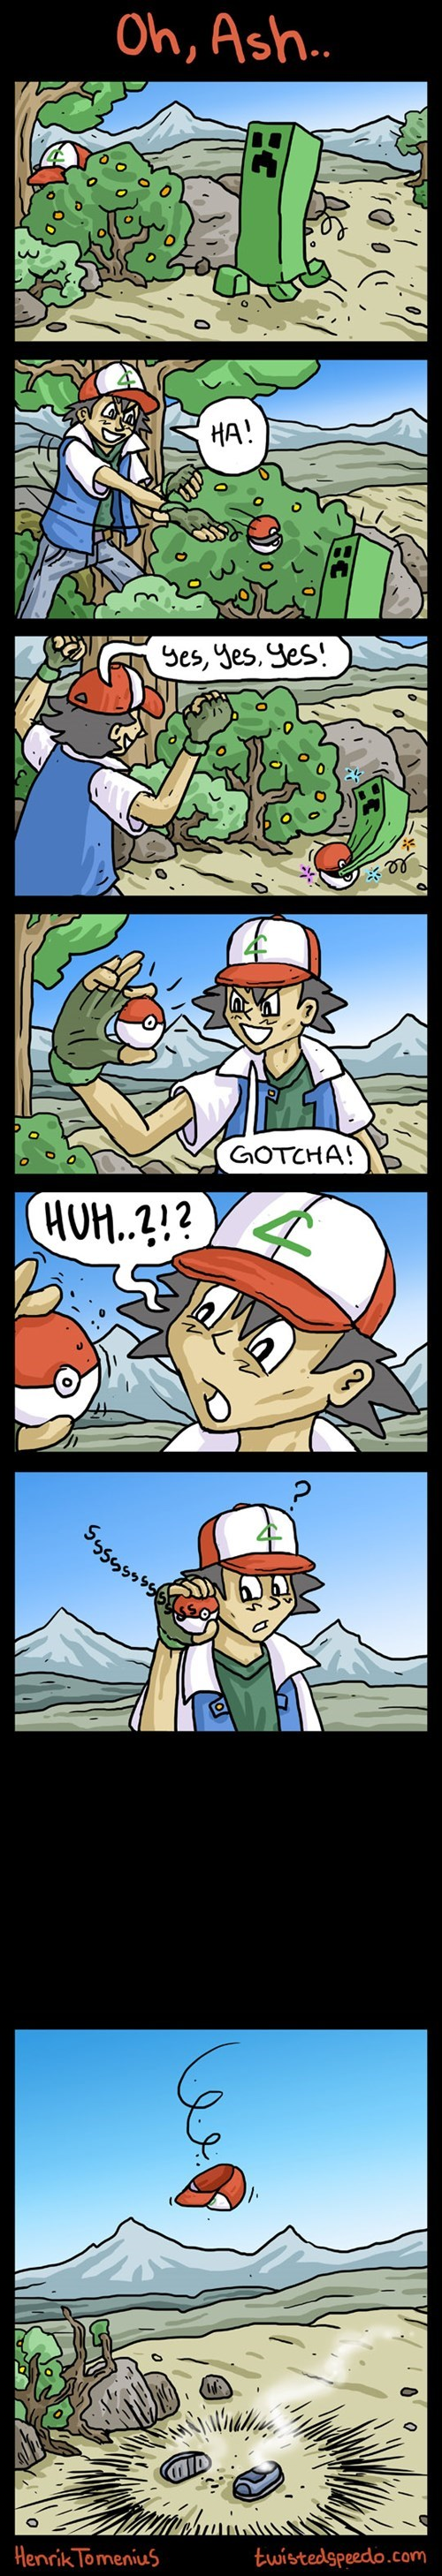 Ash Should Have Used His Pokédex First